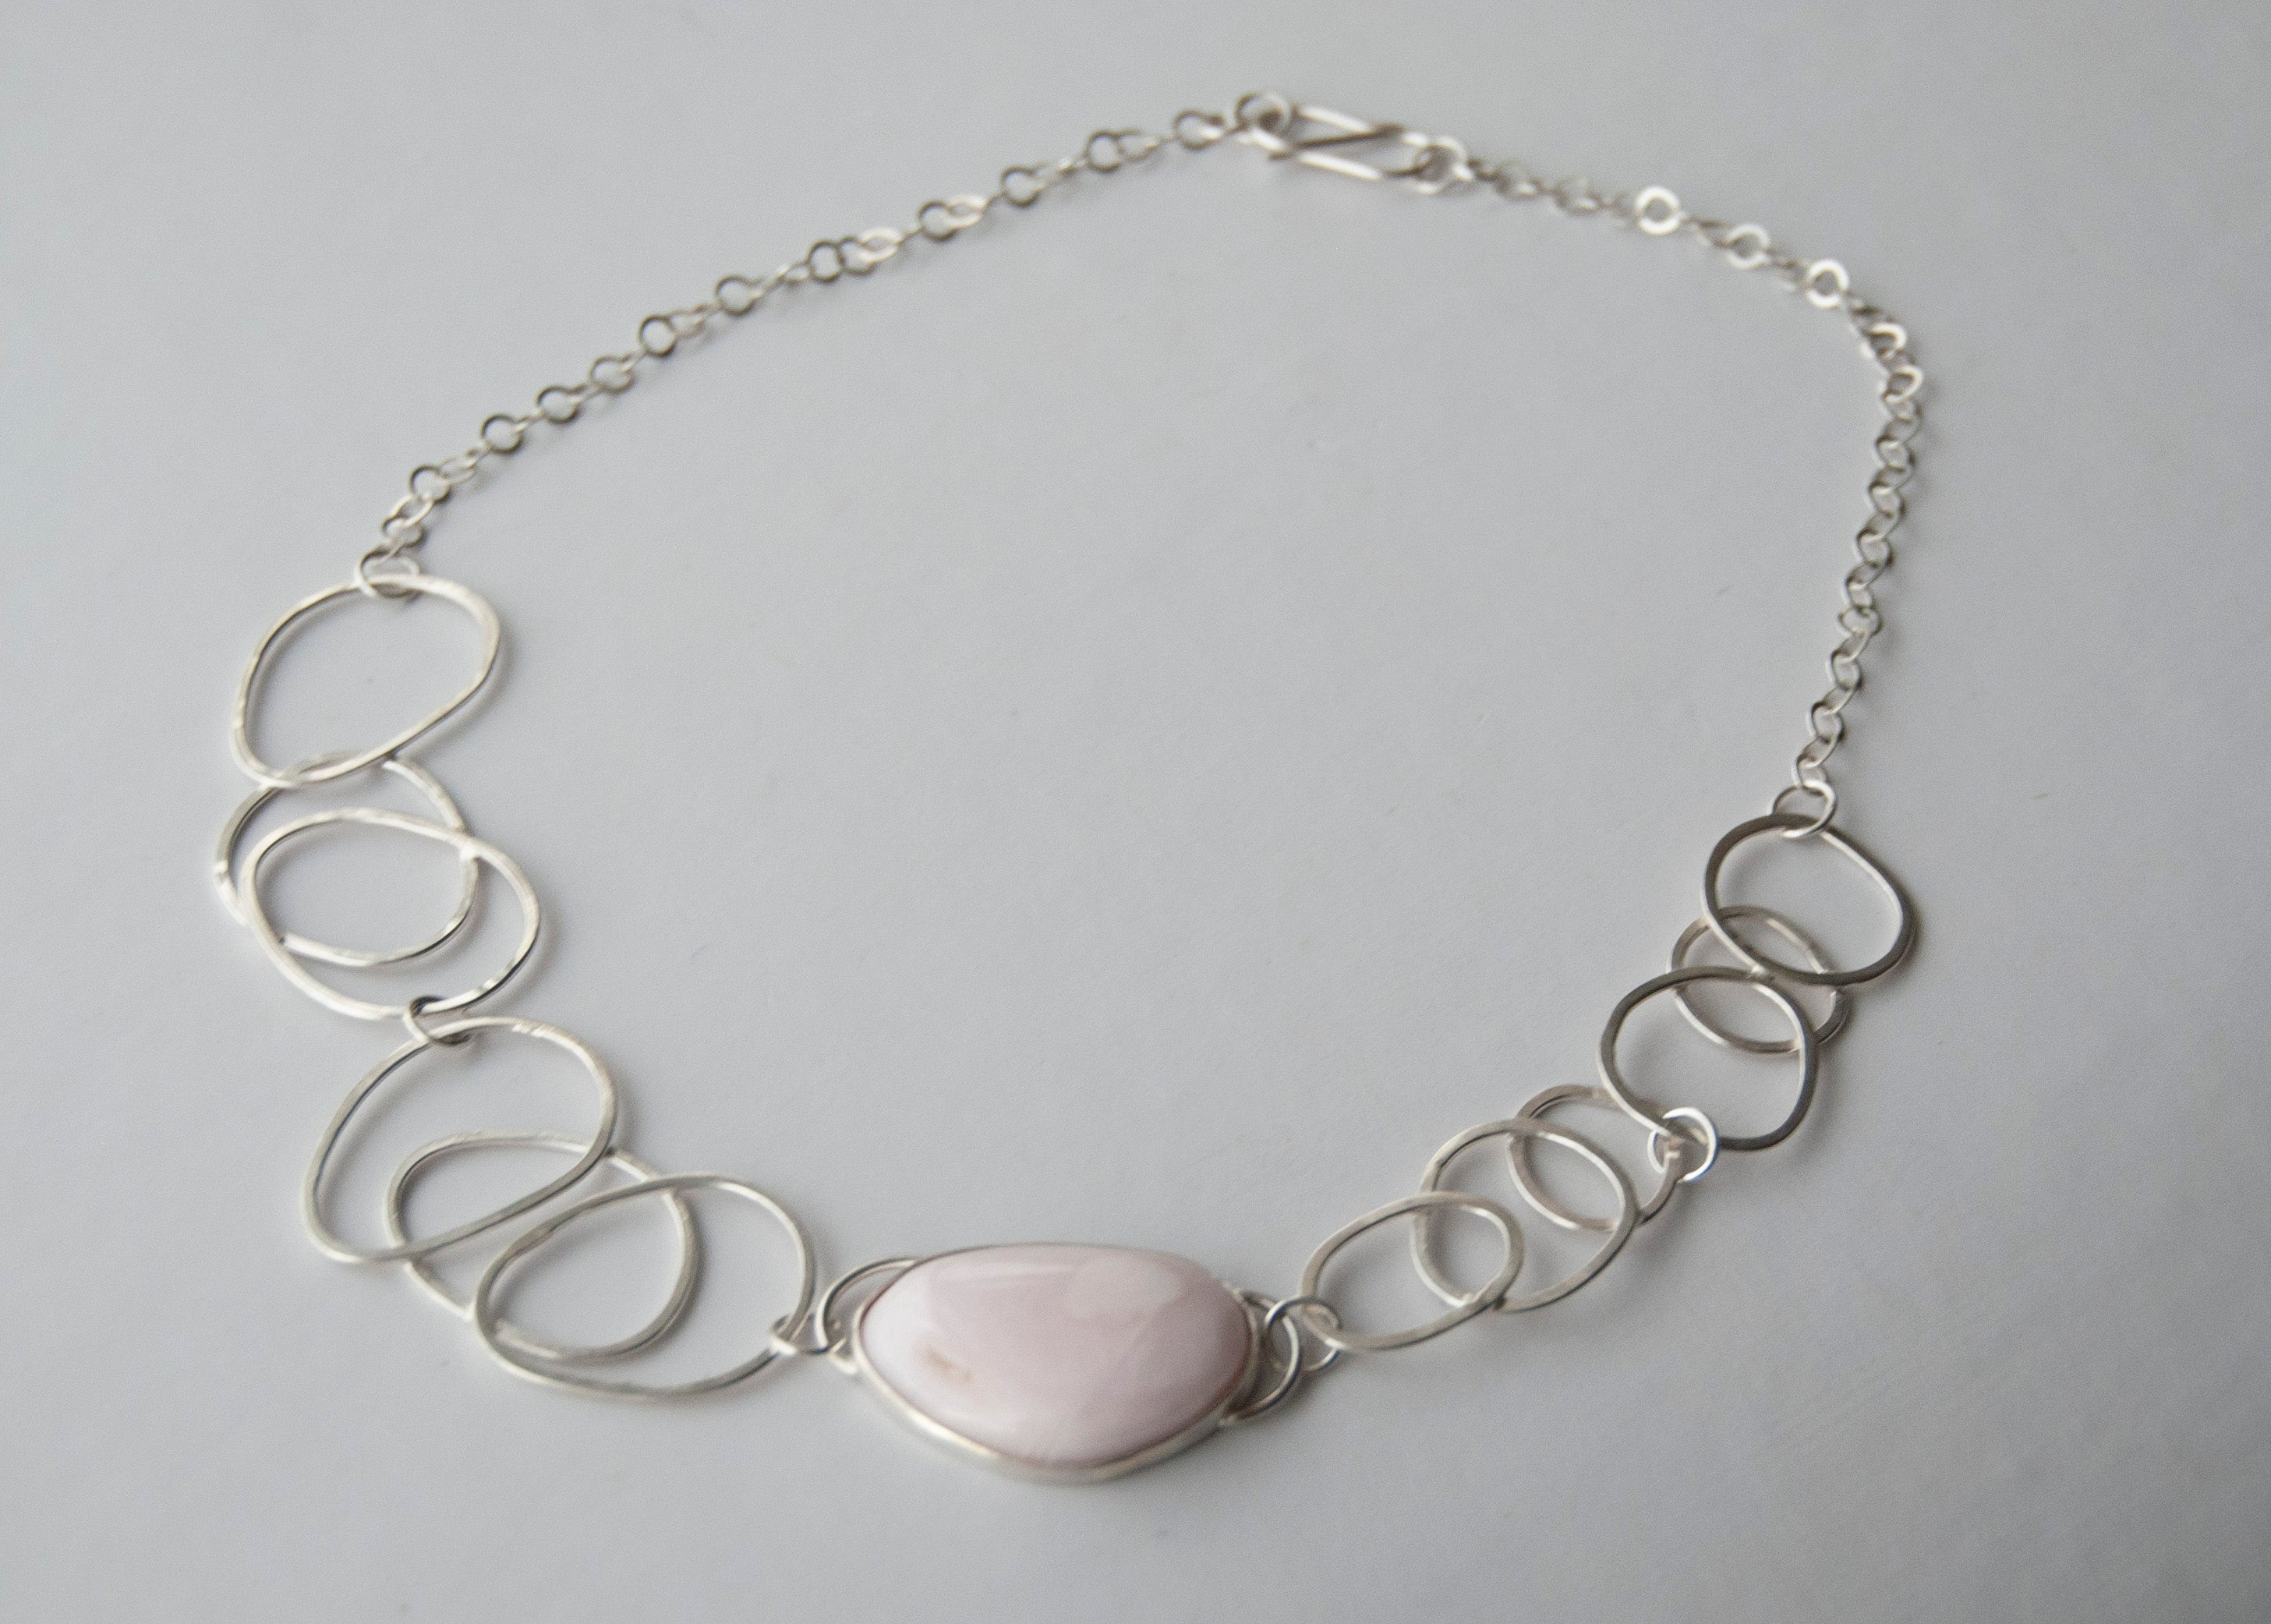 Gemstone Collection - Mangano Calcite Multi Link Necklace